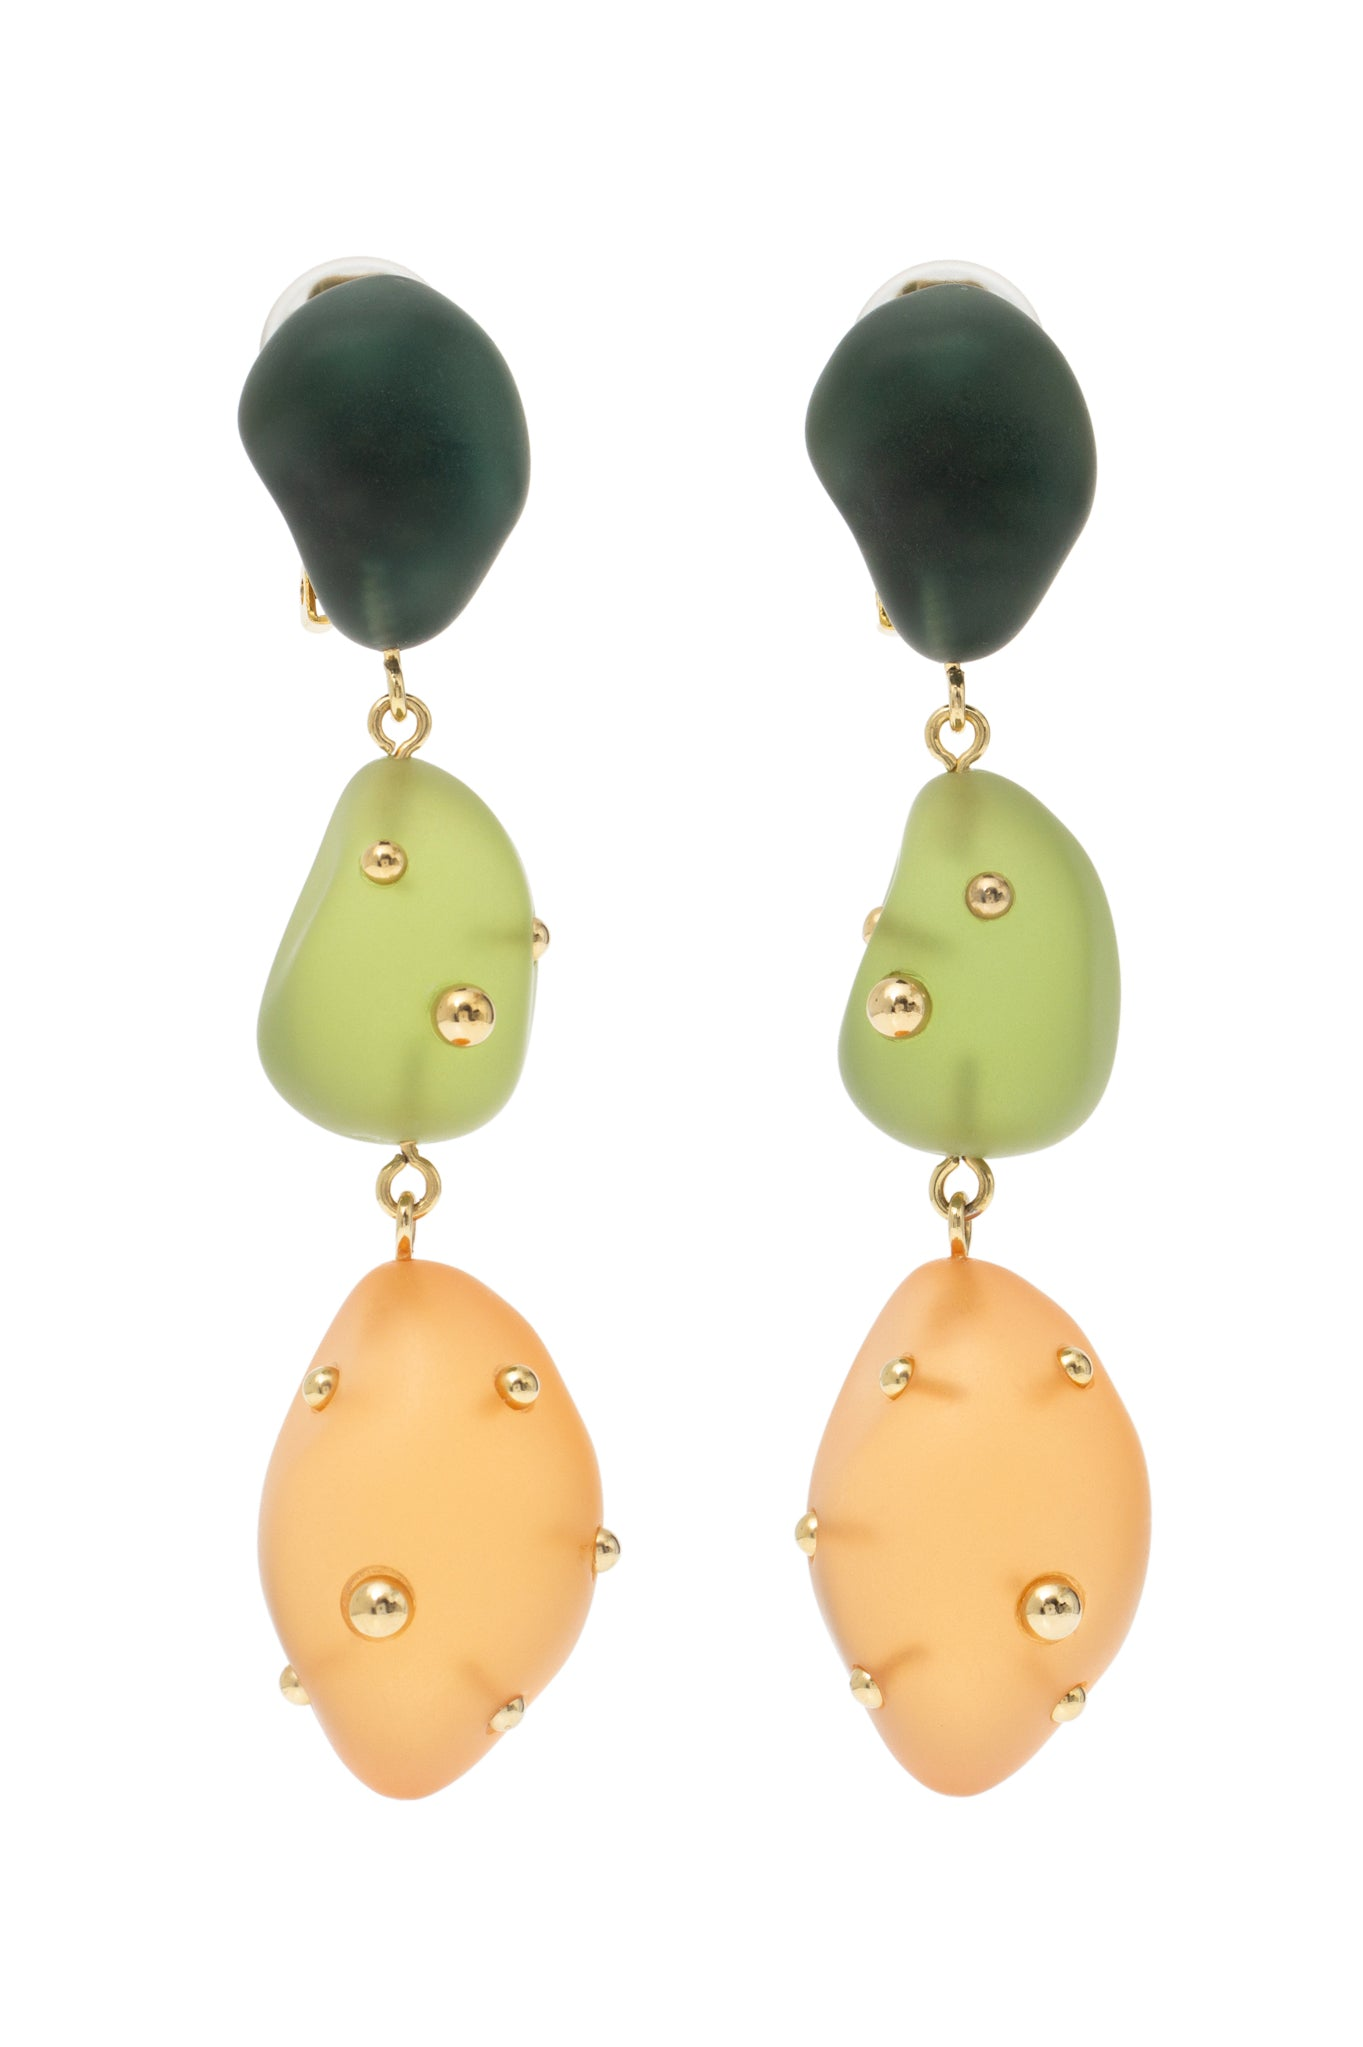 GREEN AND ORANGE ARTSY EARRINGS